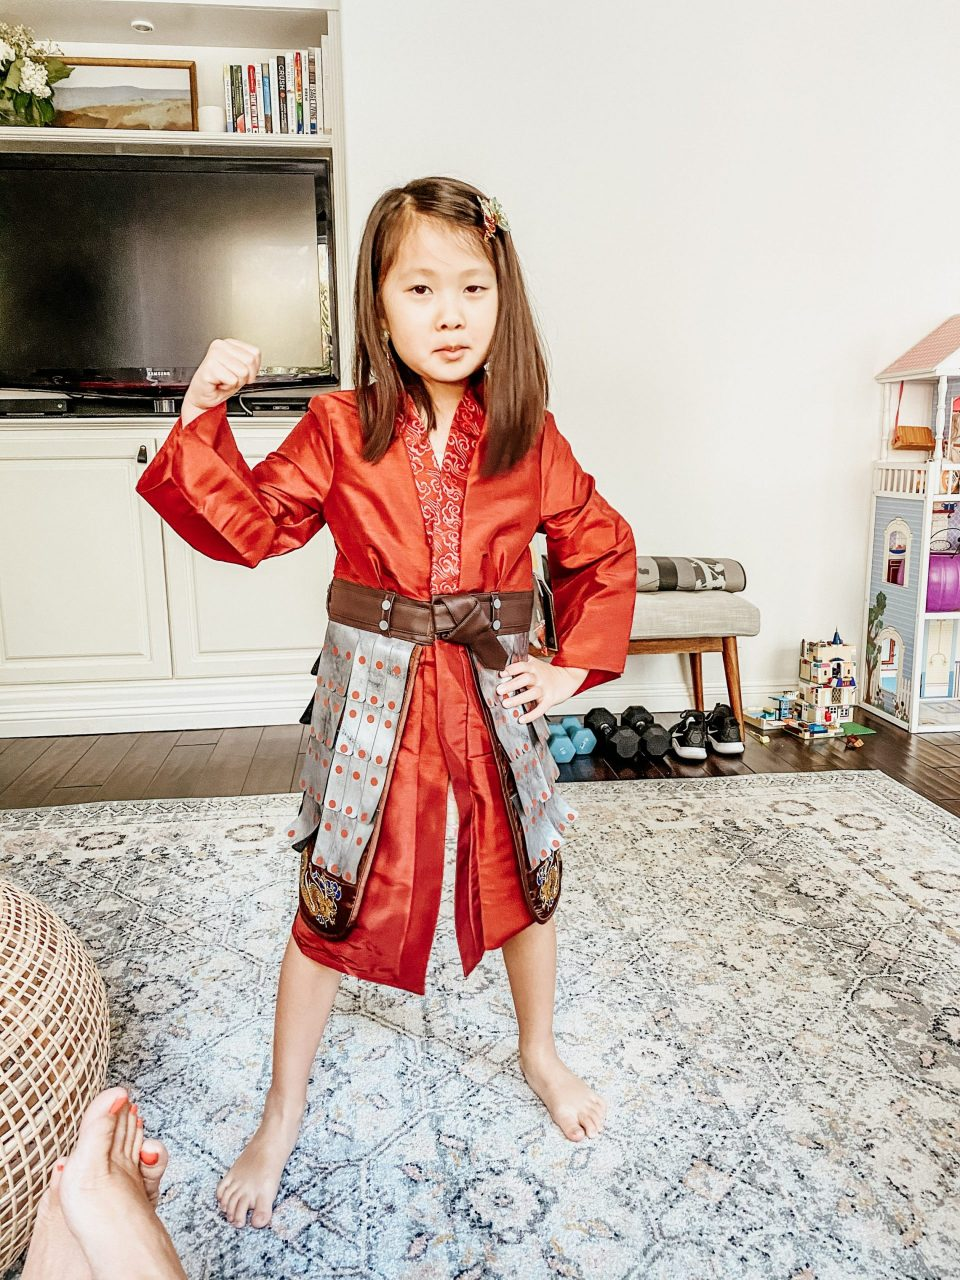 Natalie is dressing as Mulan for Halloween this year!